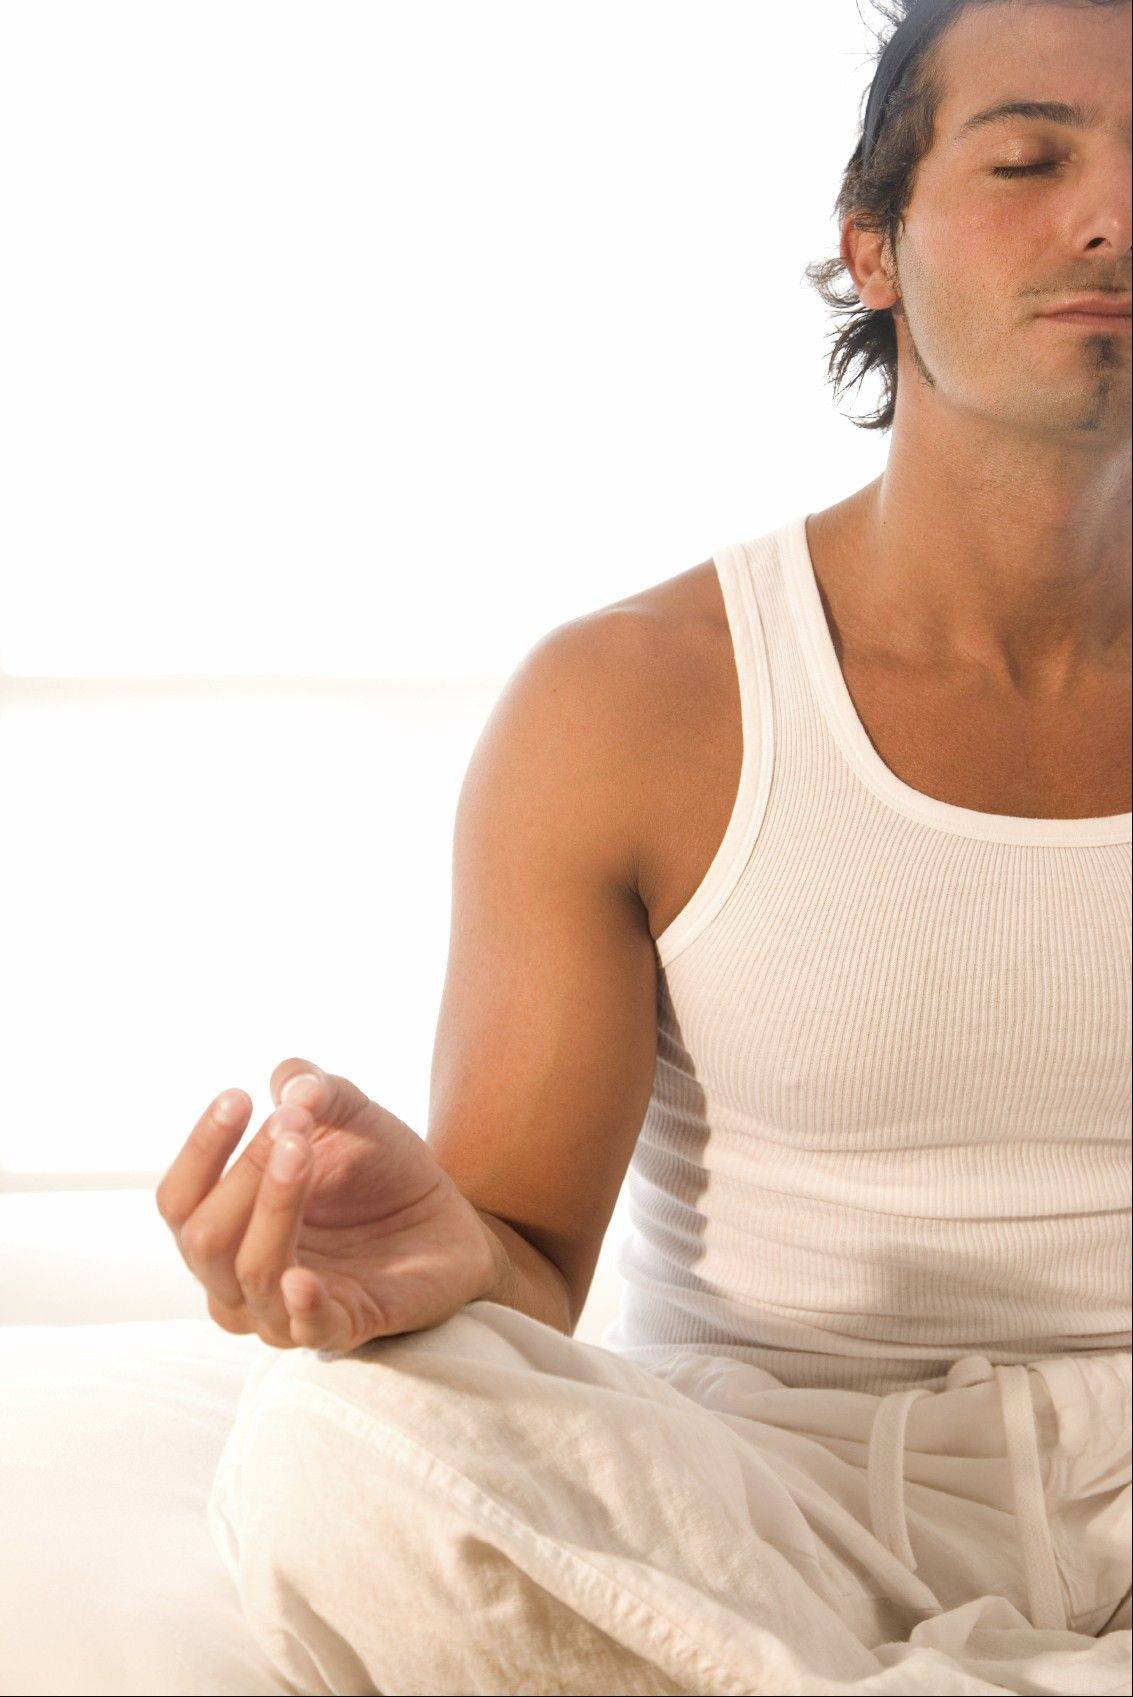 Meditation and a proper diet can help in dealing with stress.